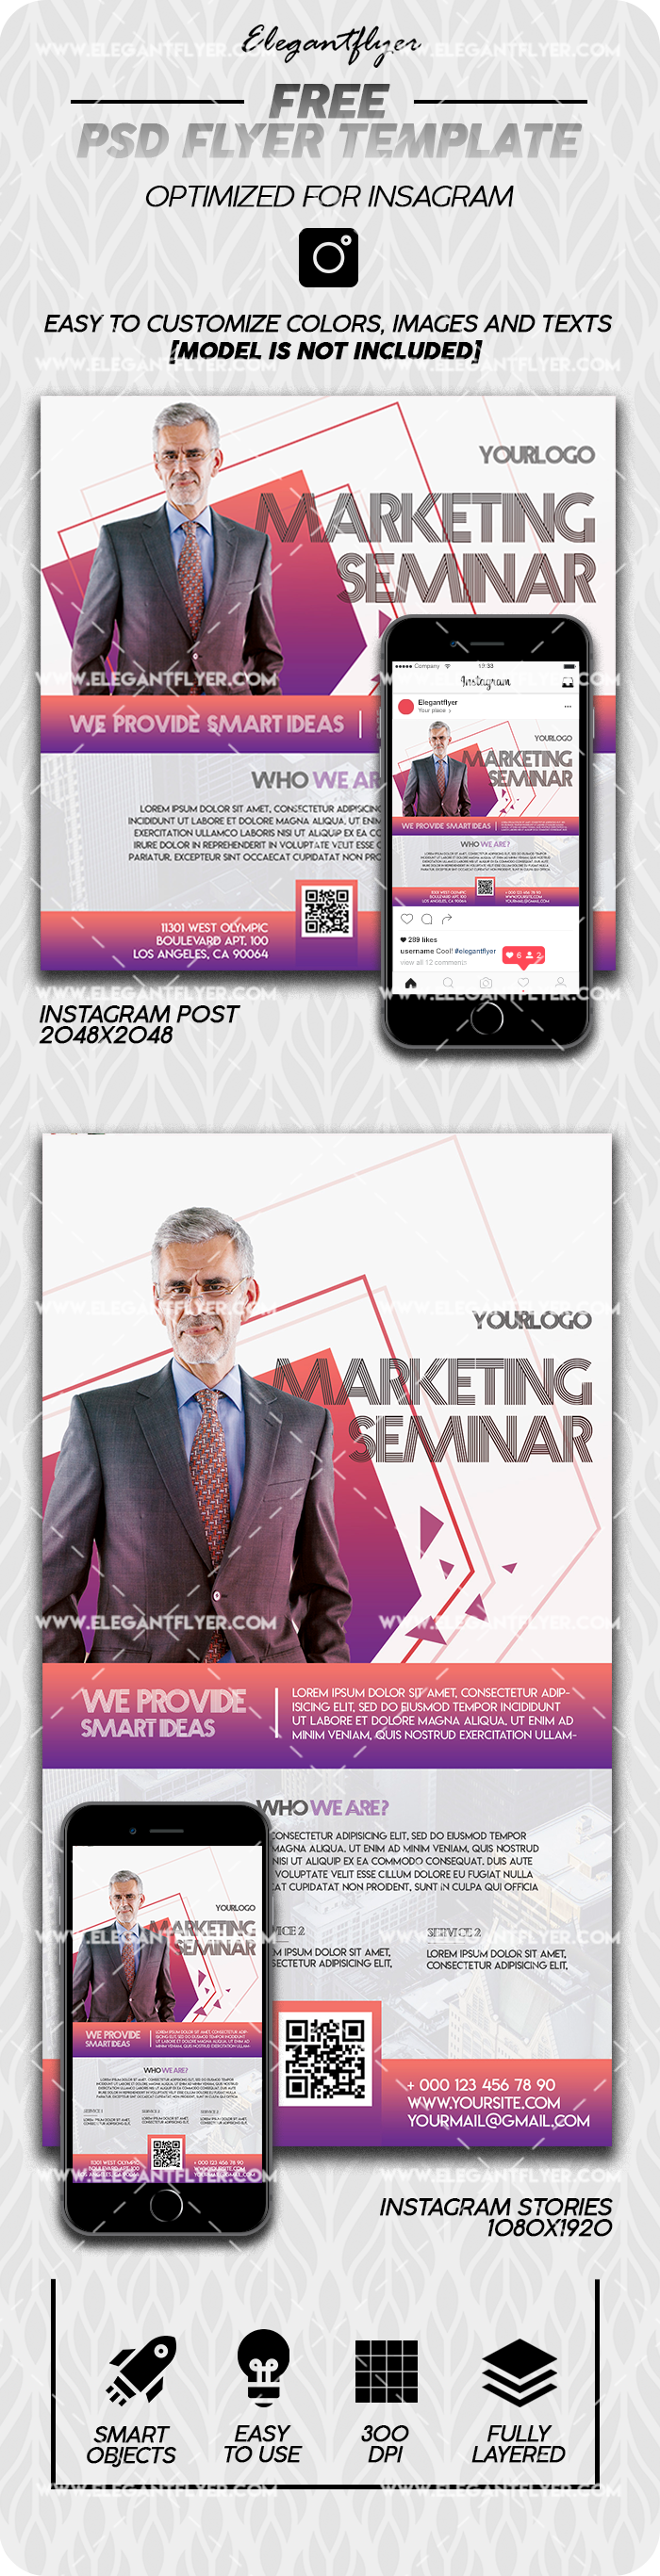 Marketing Seminar – Free Instagram Stories Template in PSD + Post Templates